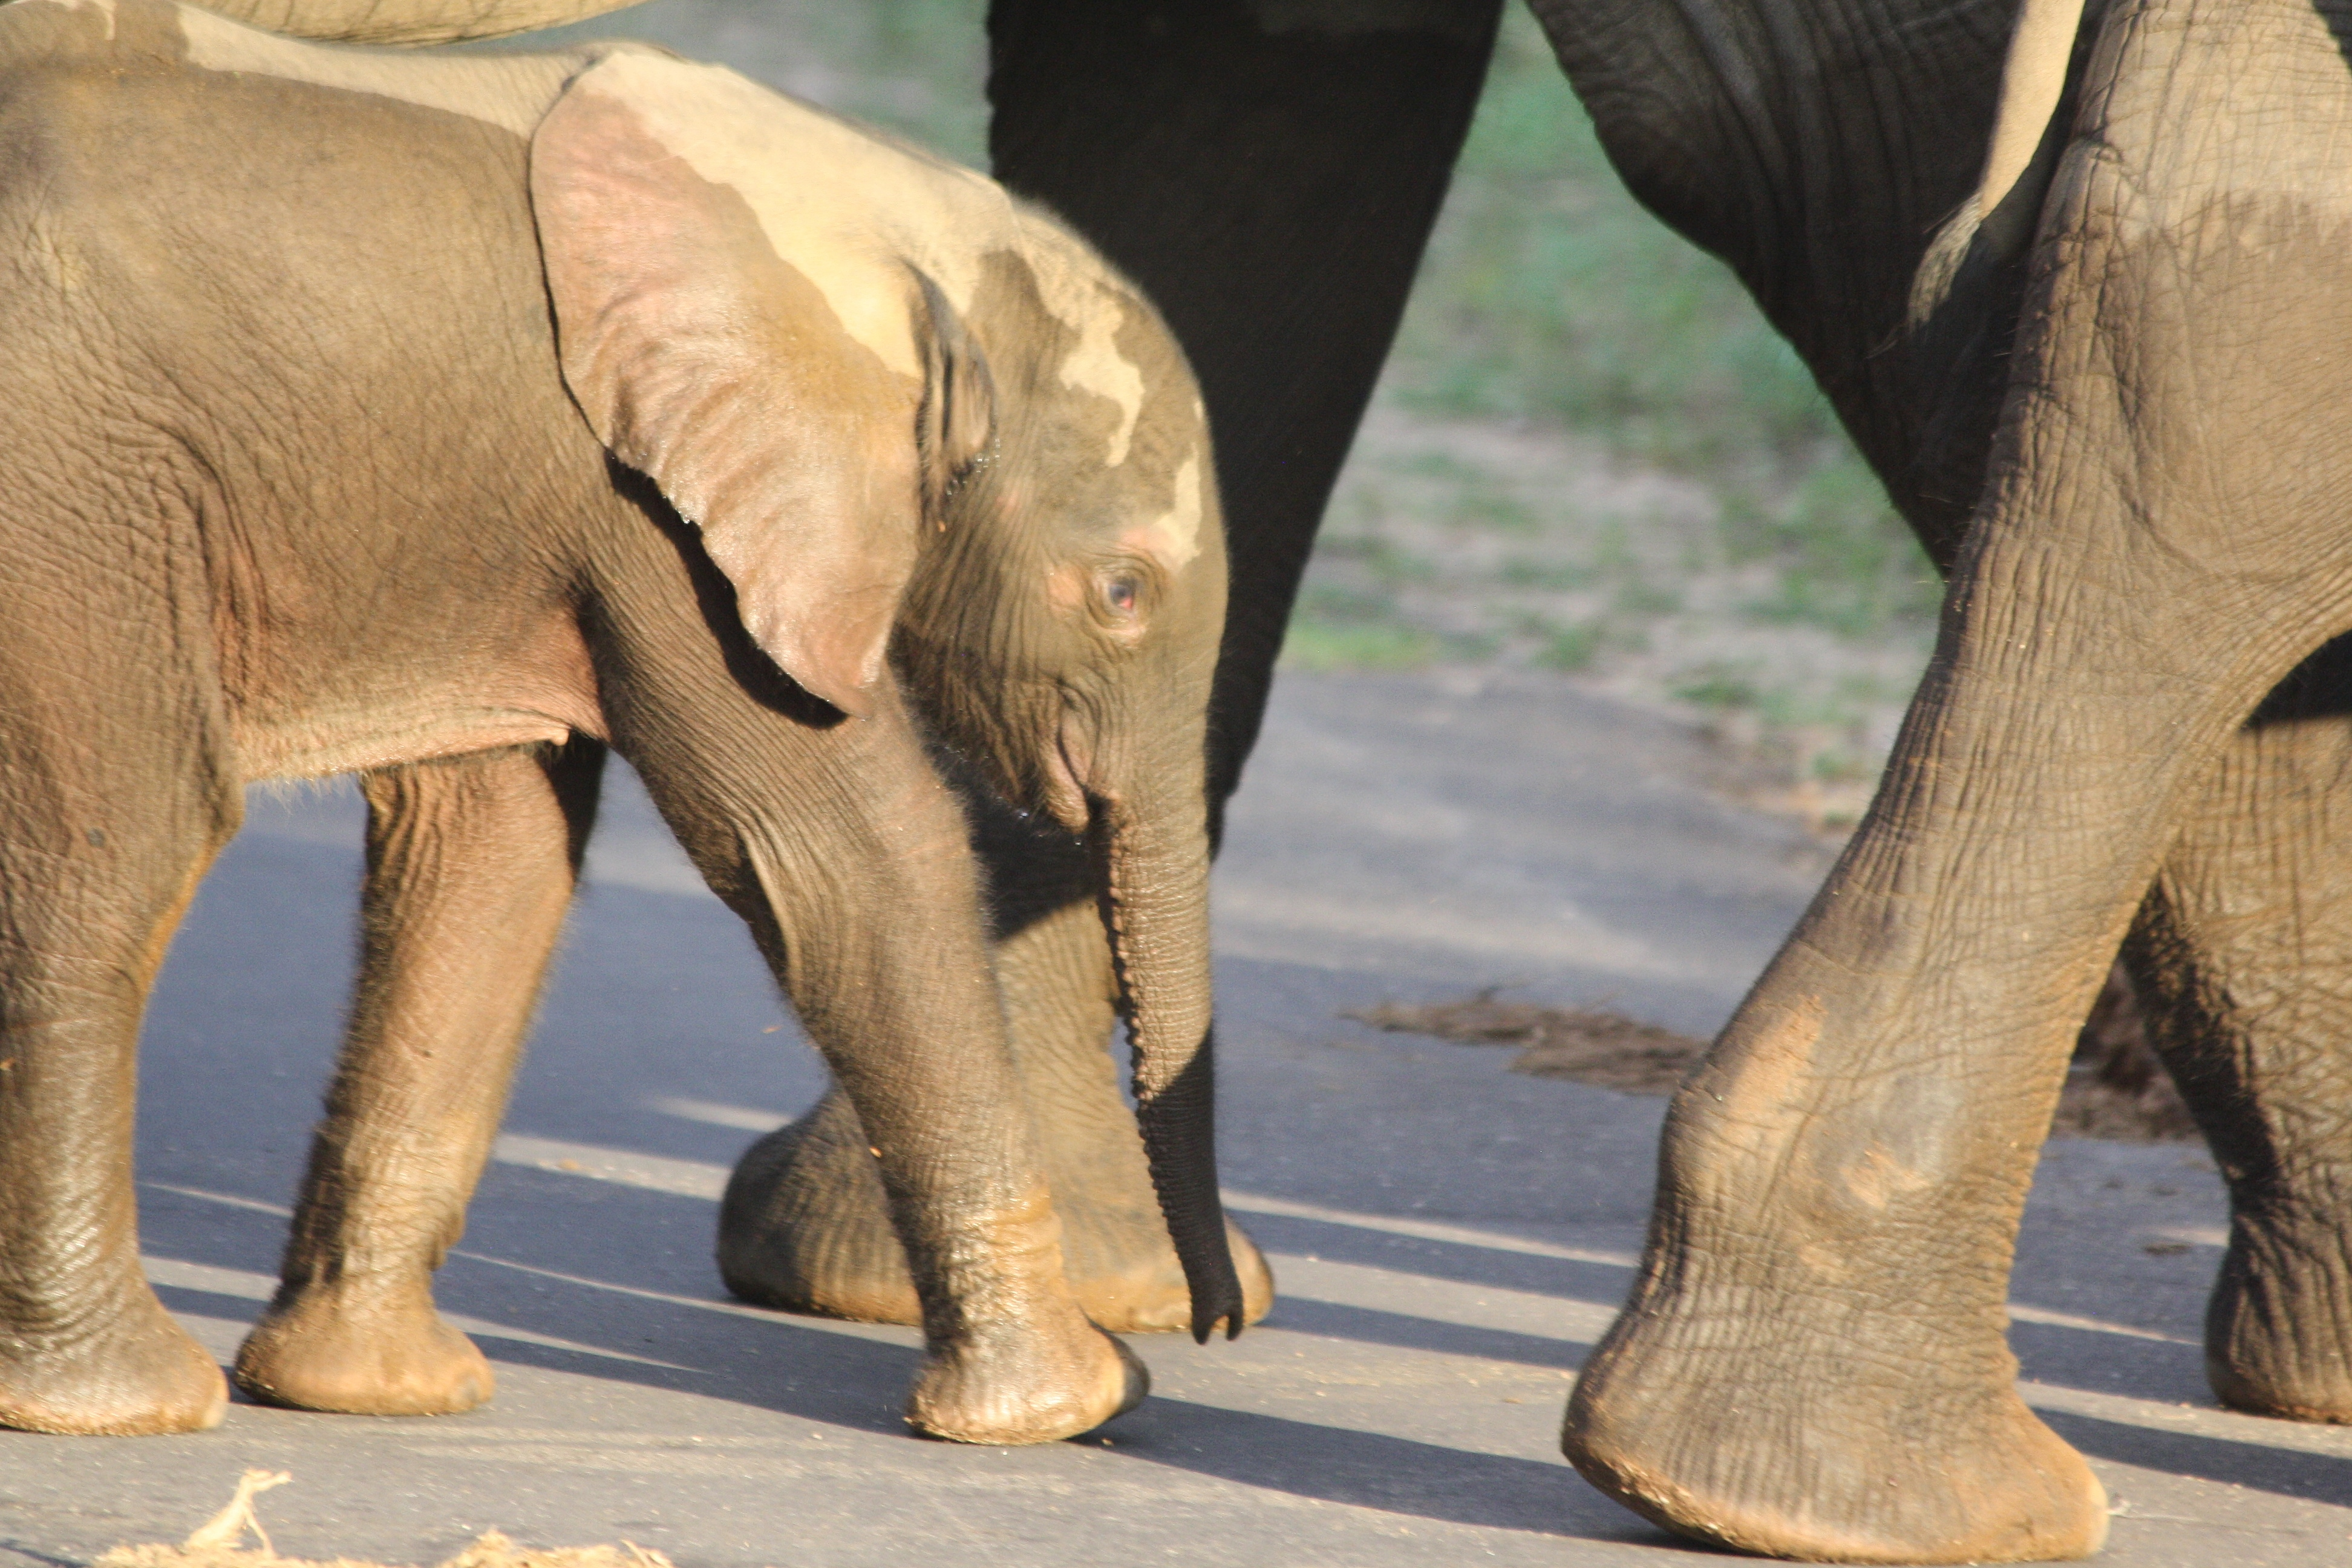 Elephant babies often walk with what looks like a little smile on their cute faces